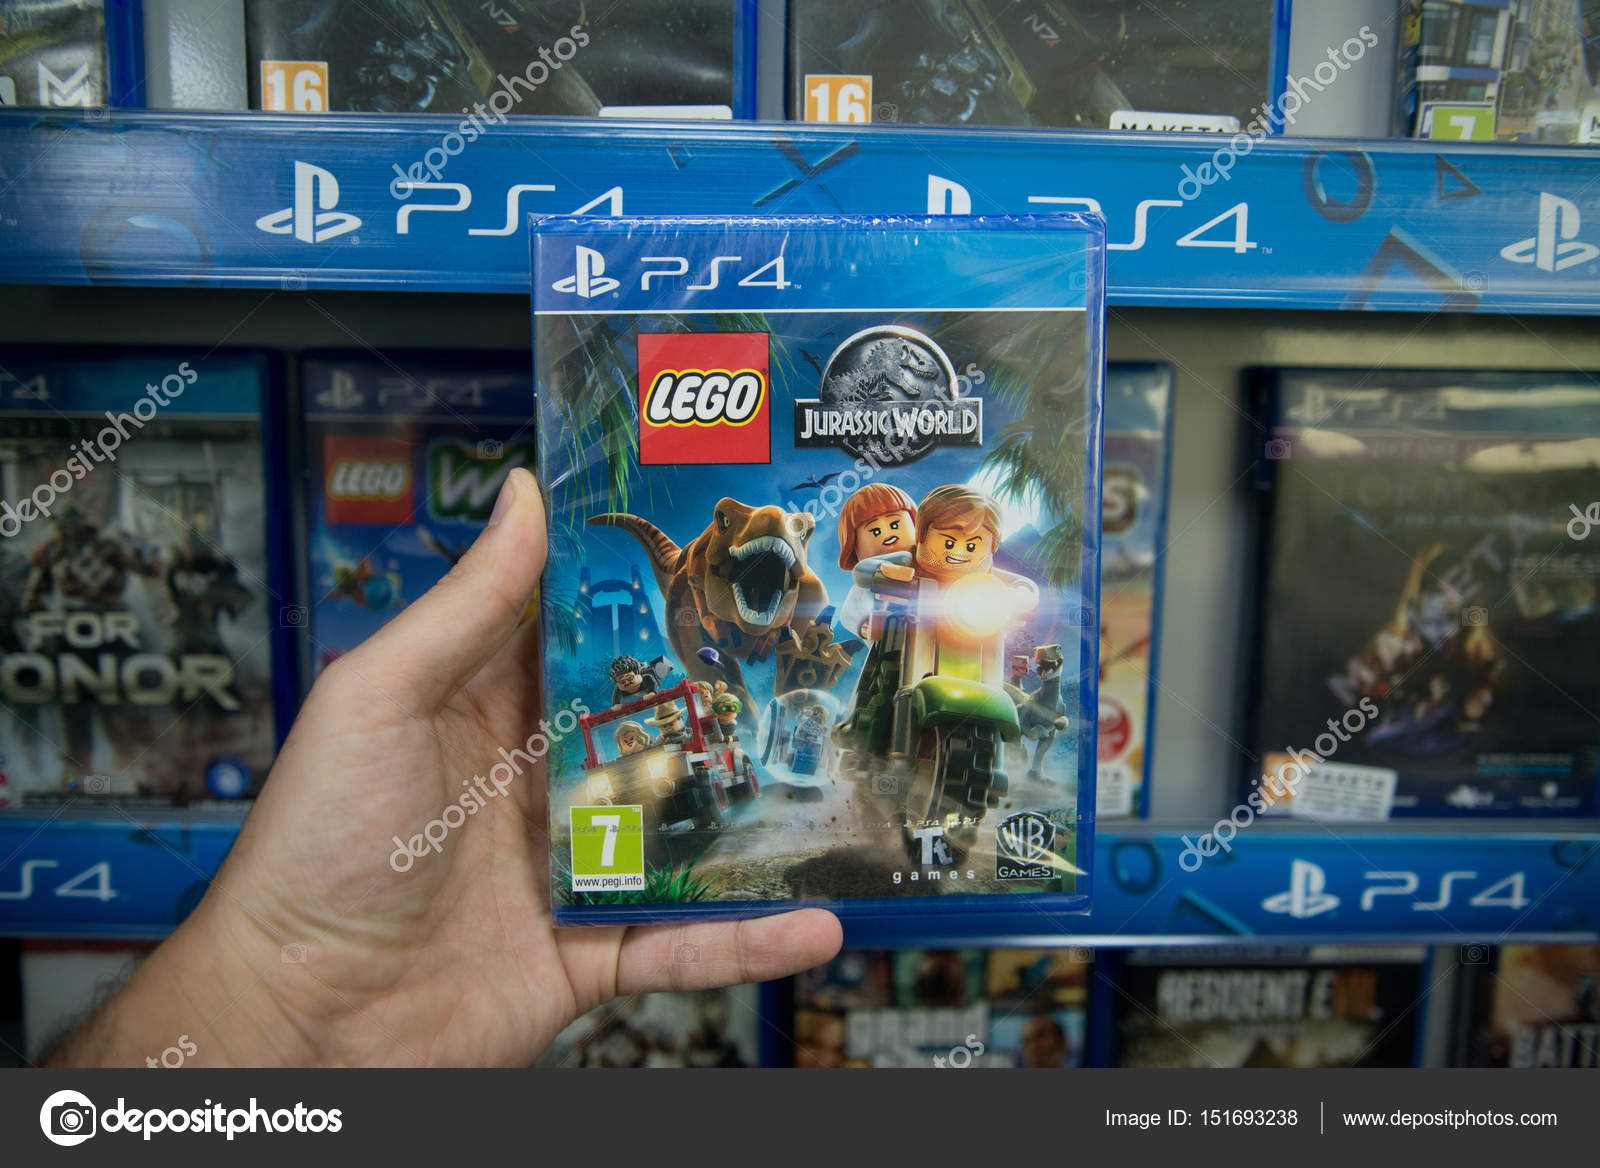 Lego Jurassic World Videogame On Sony Playstation 4 Stock Ps4 Bratislava Slovakia Circa April 2017 Man Holding Console In Store Photo By Pe3check